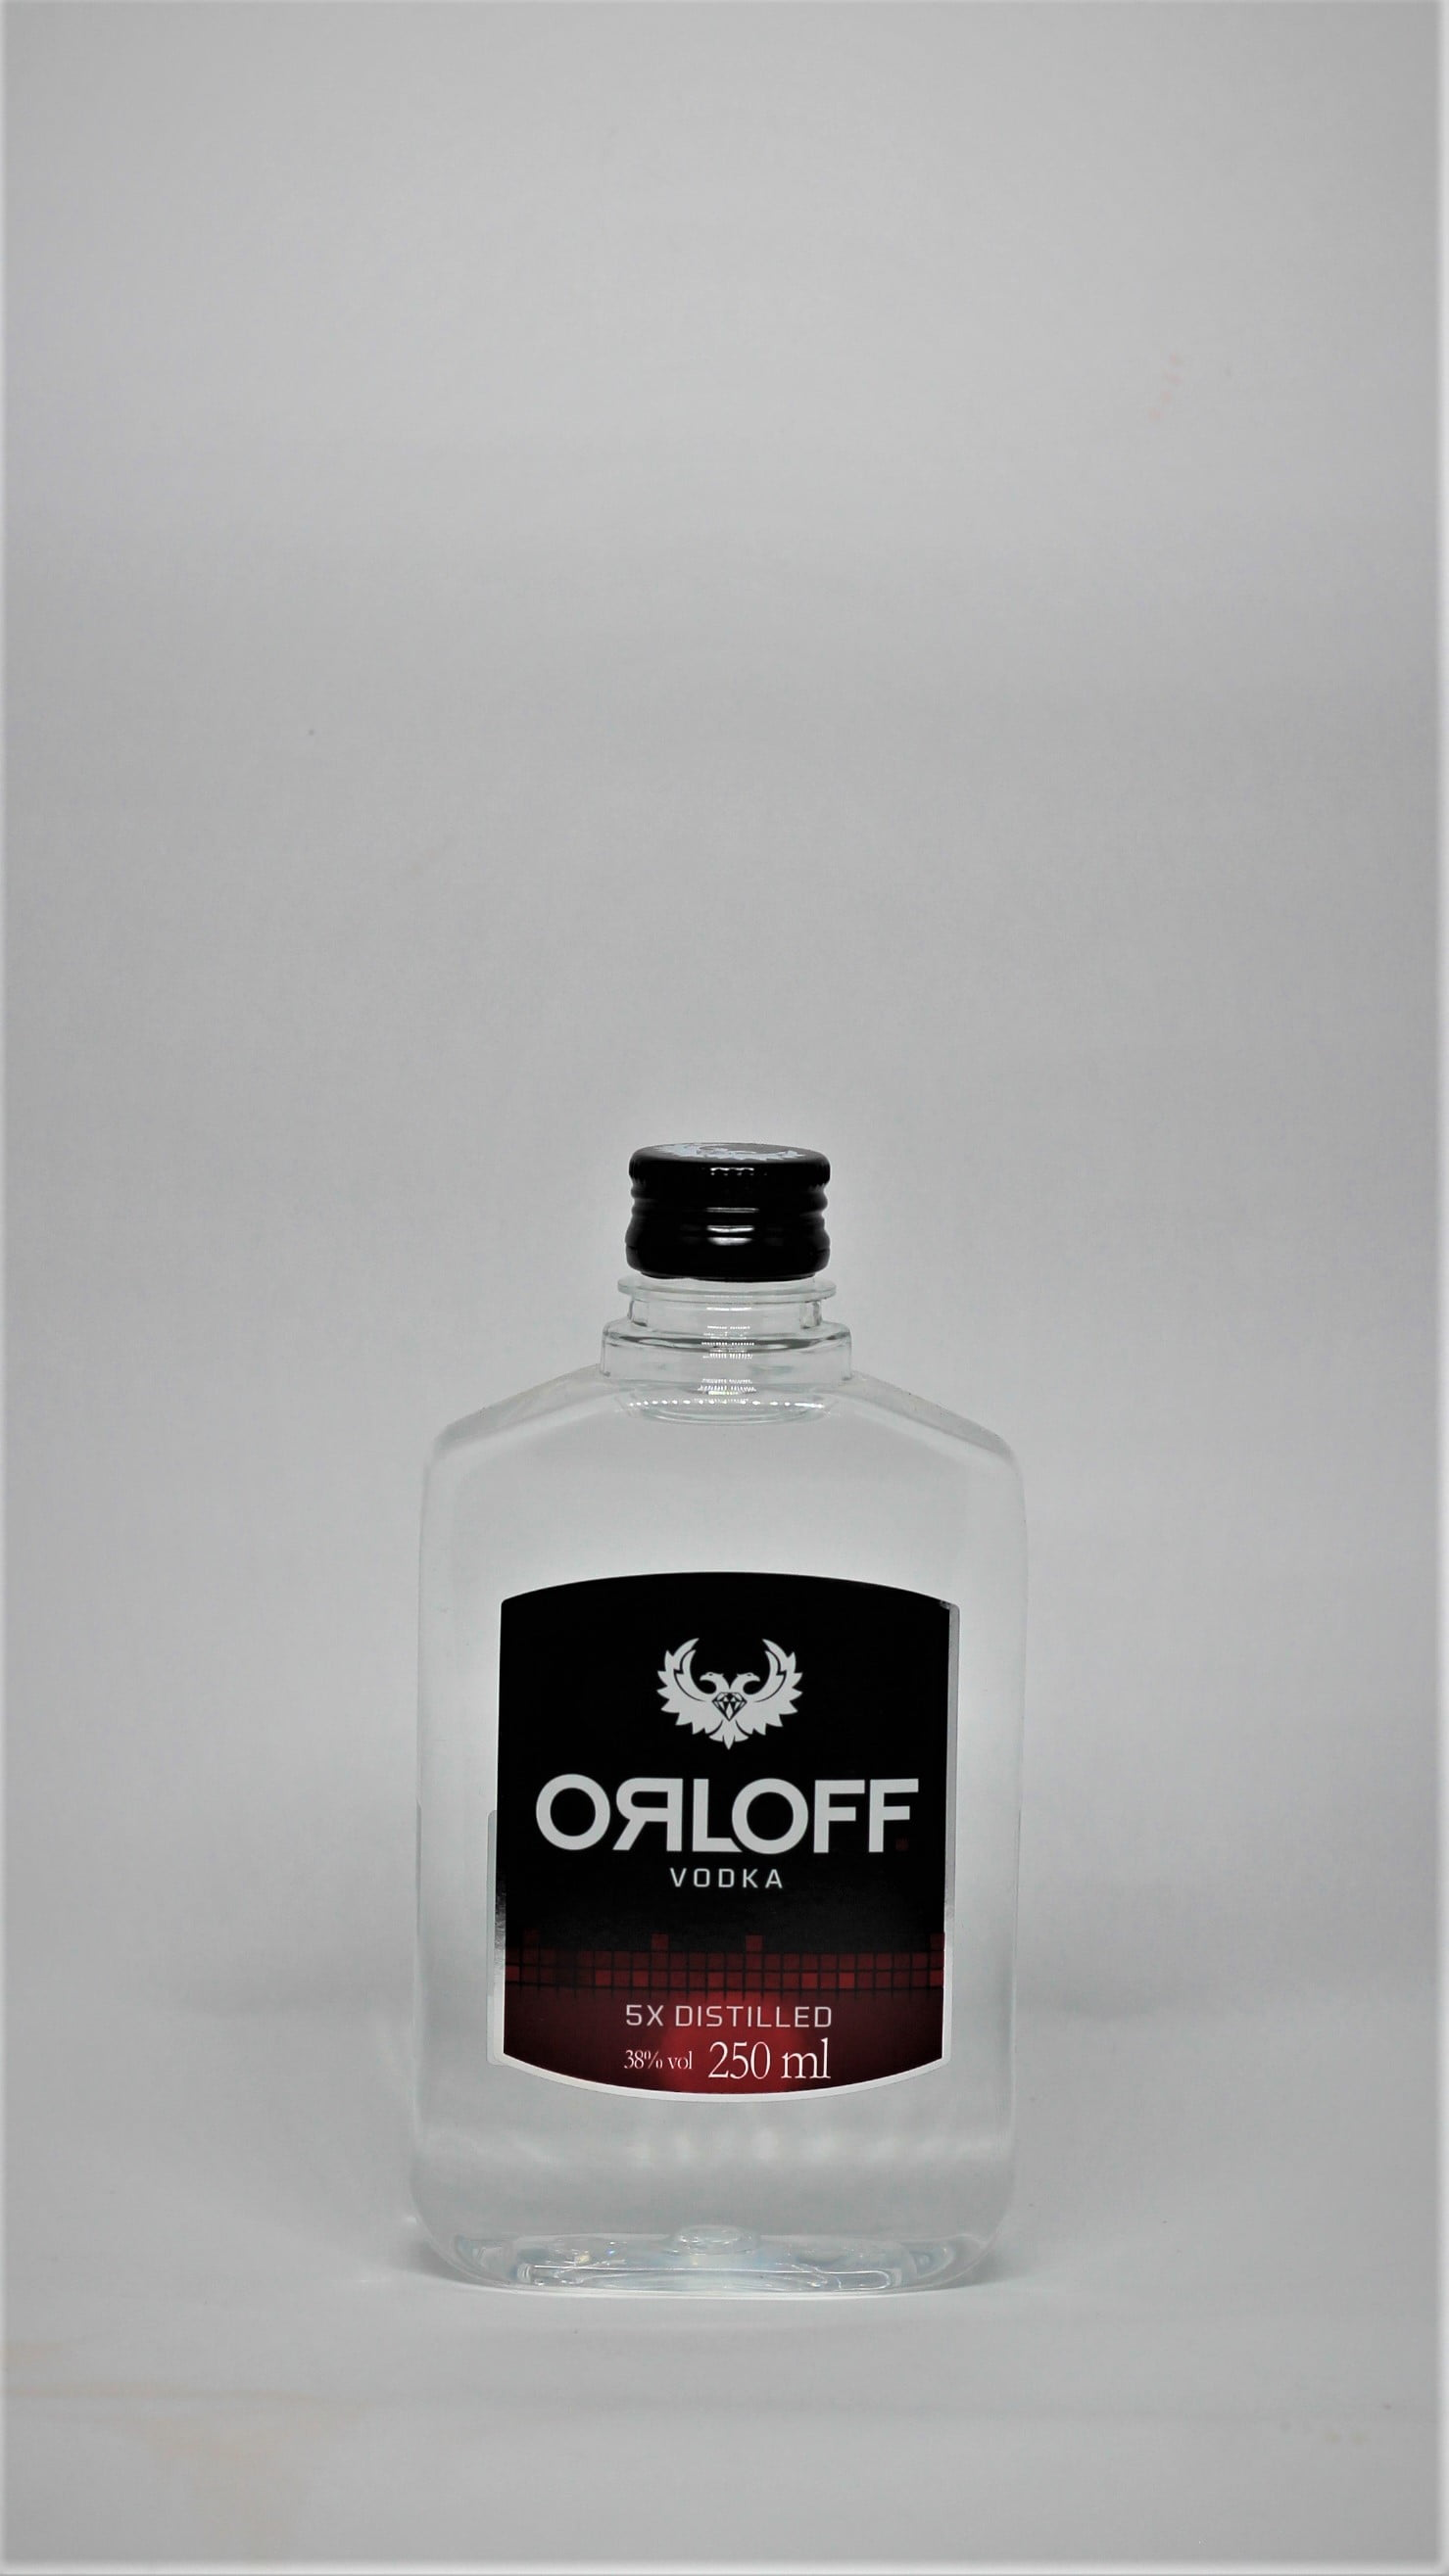 VODKA NACIONAL ORLOFF - 250 ml